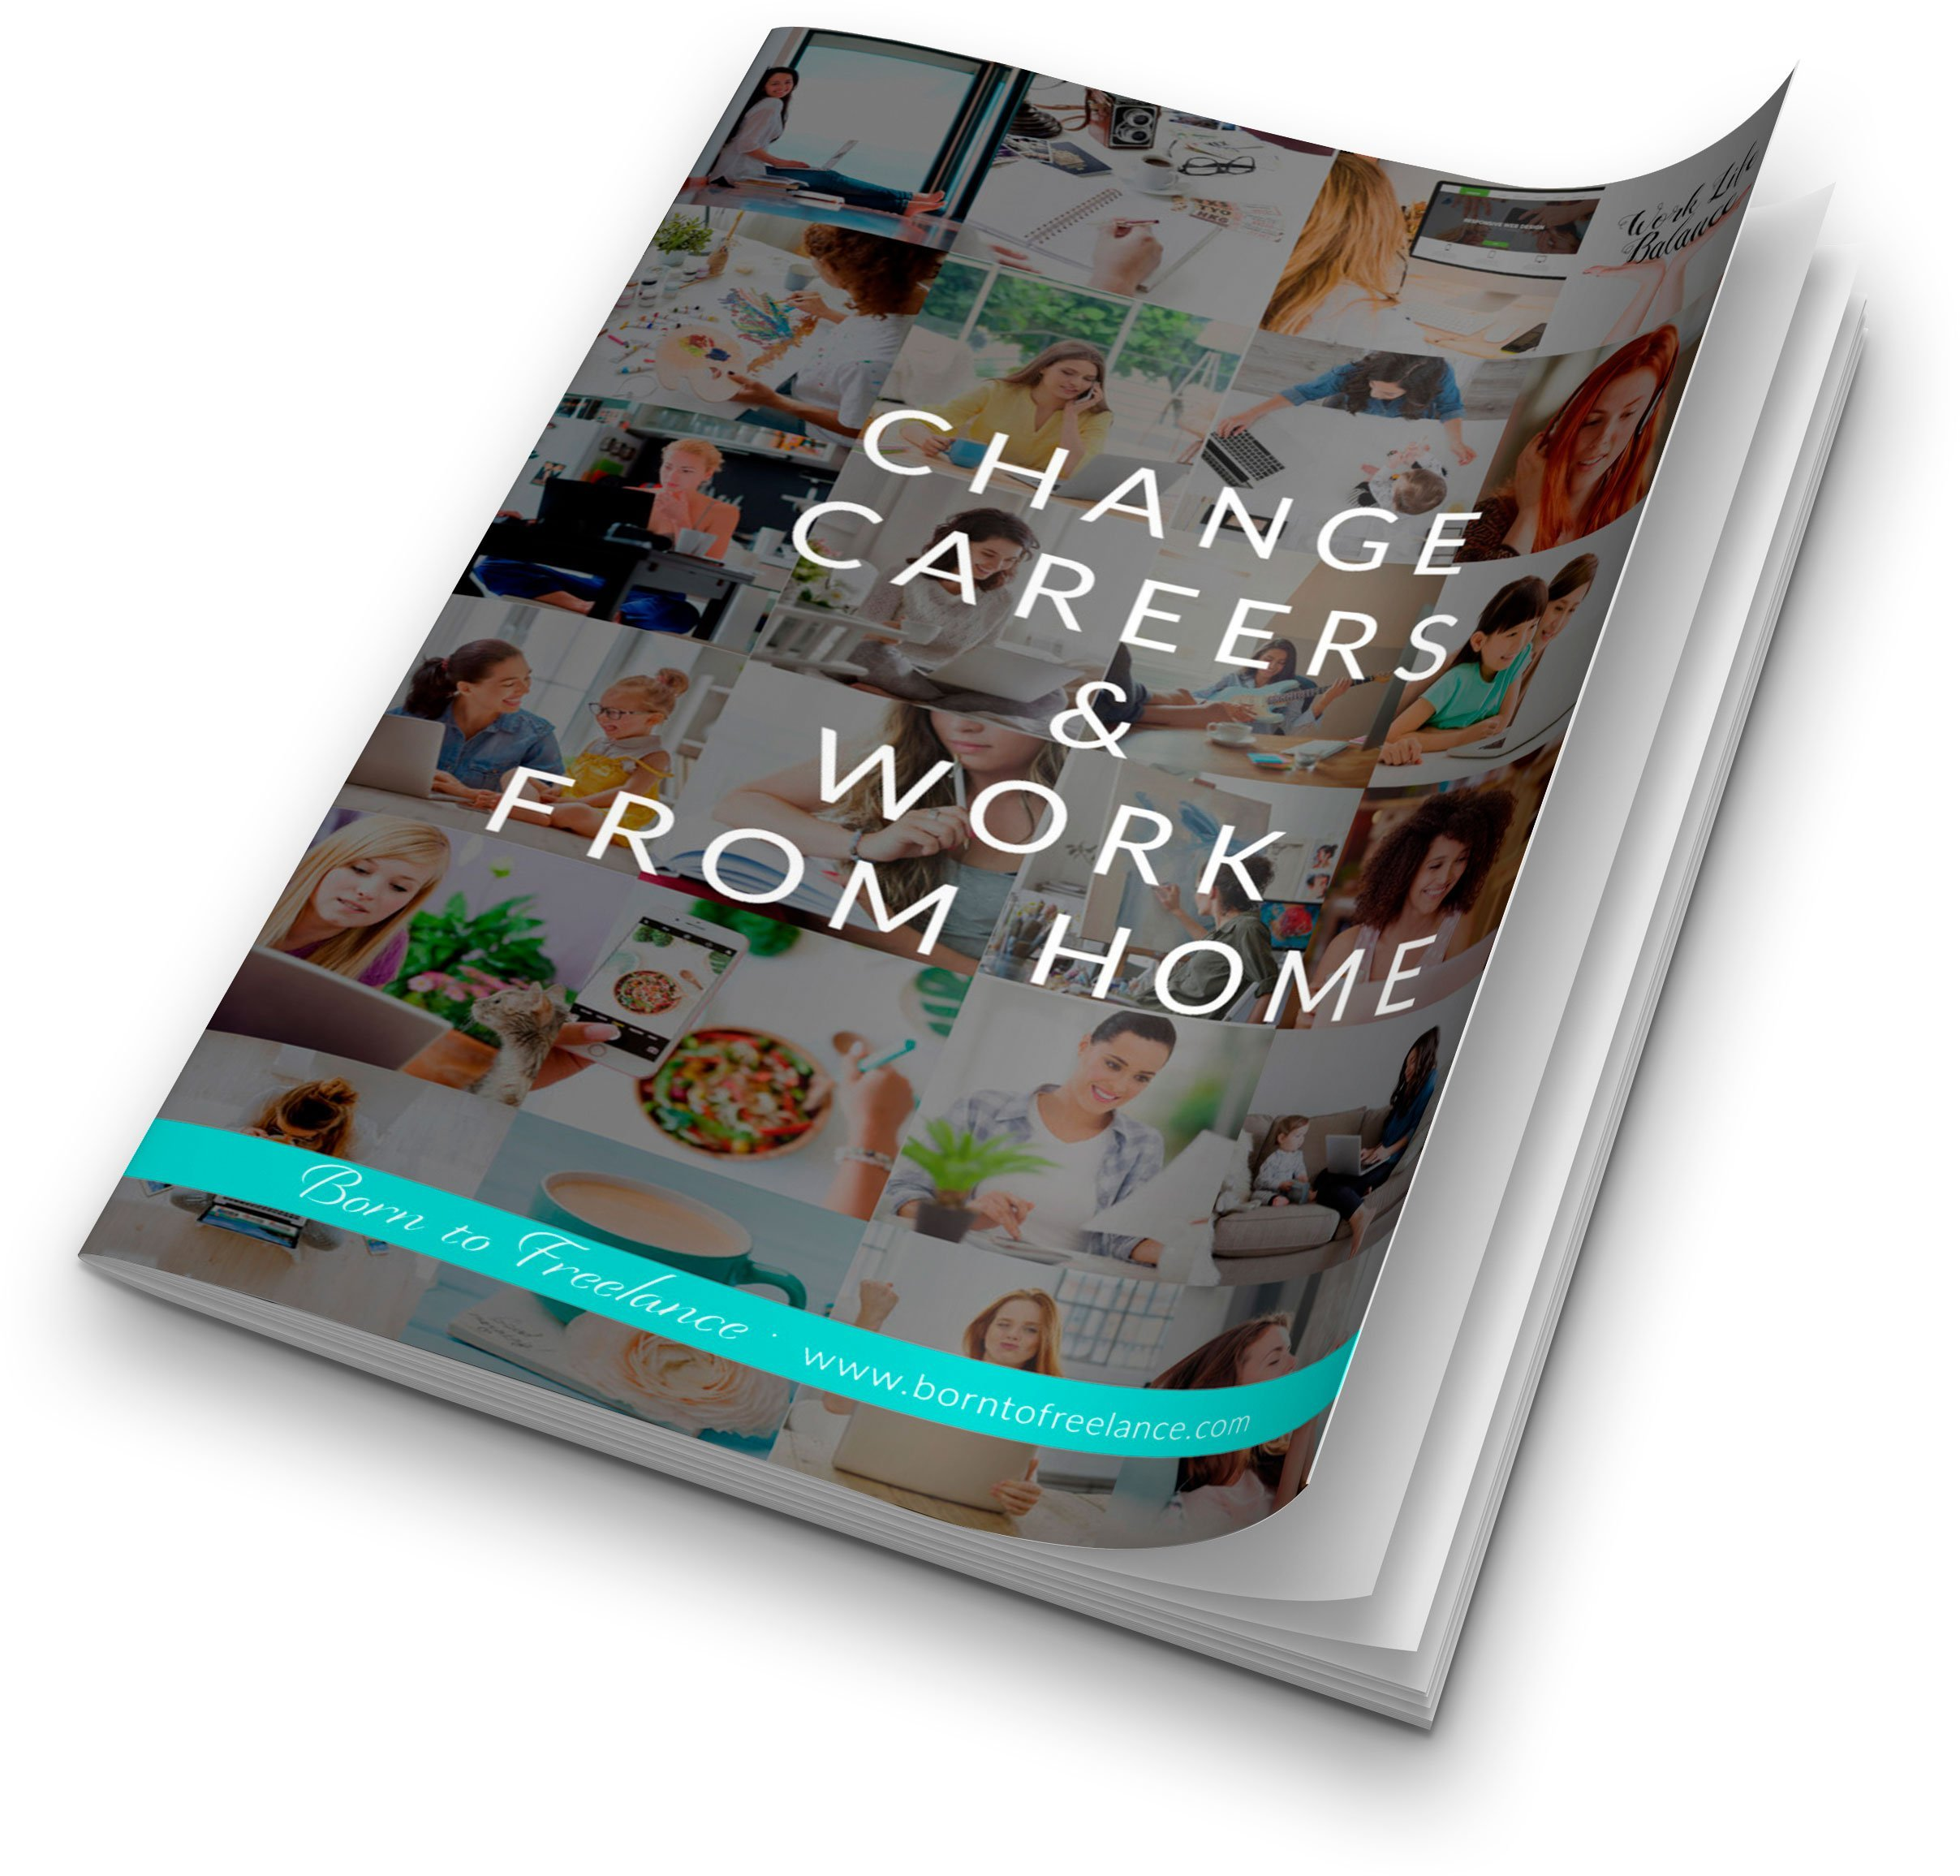 Change Careers & Work from Home